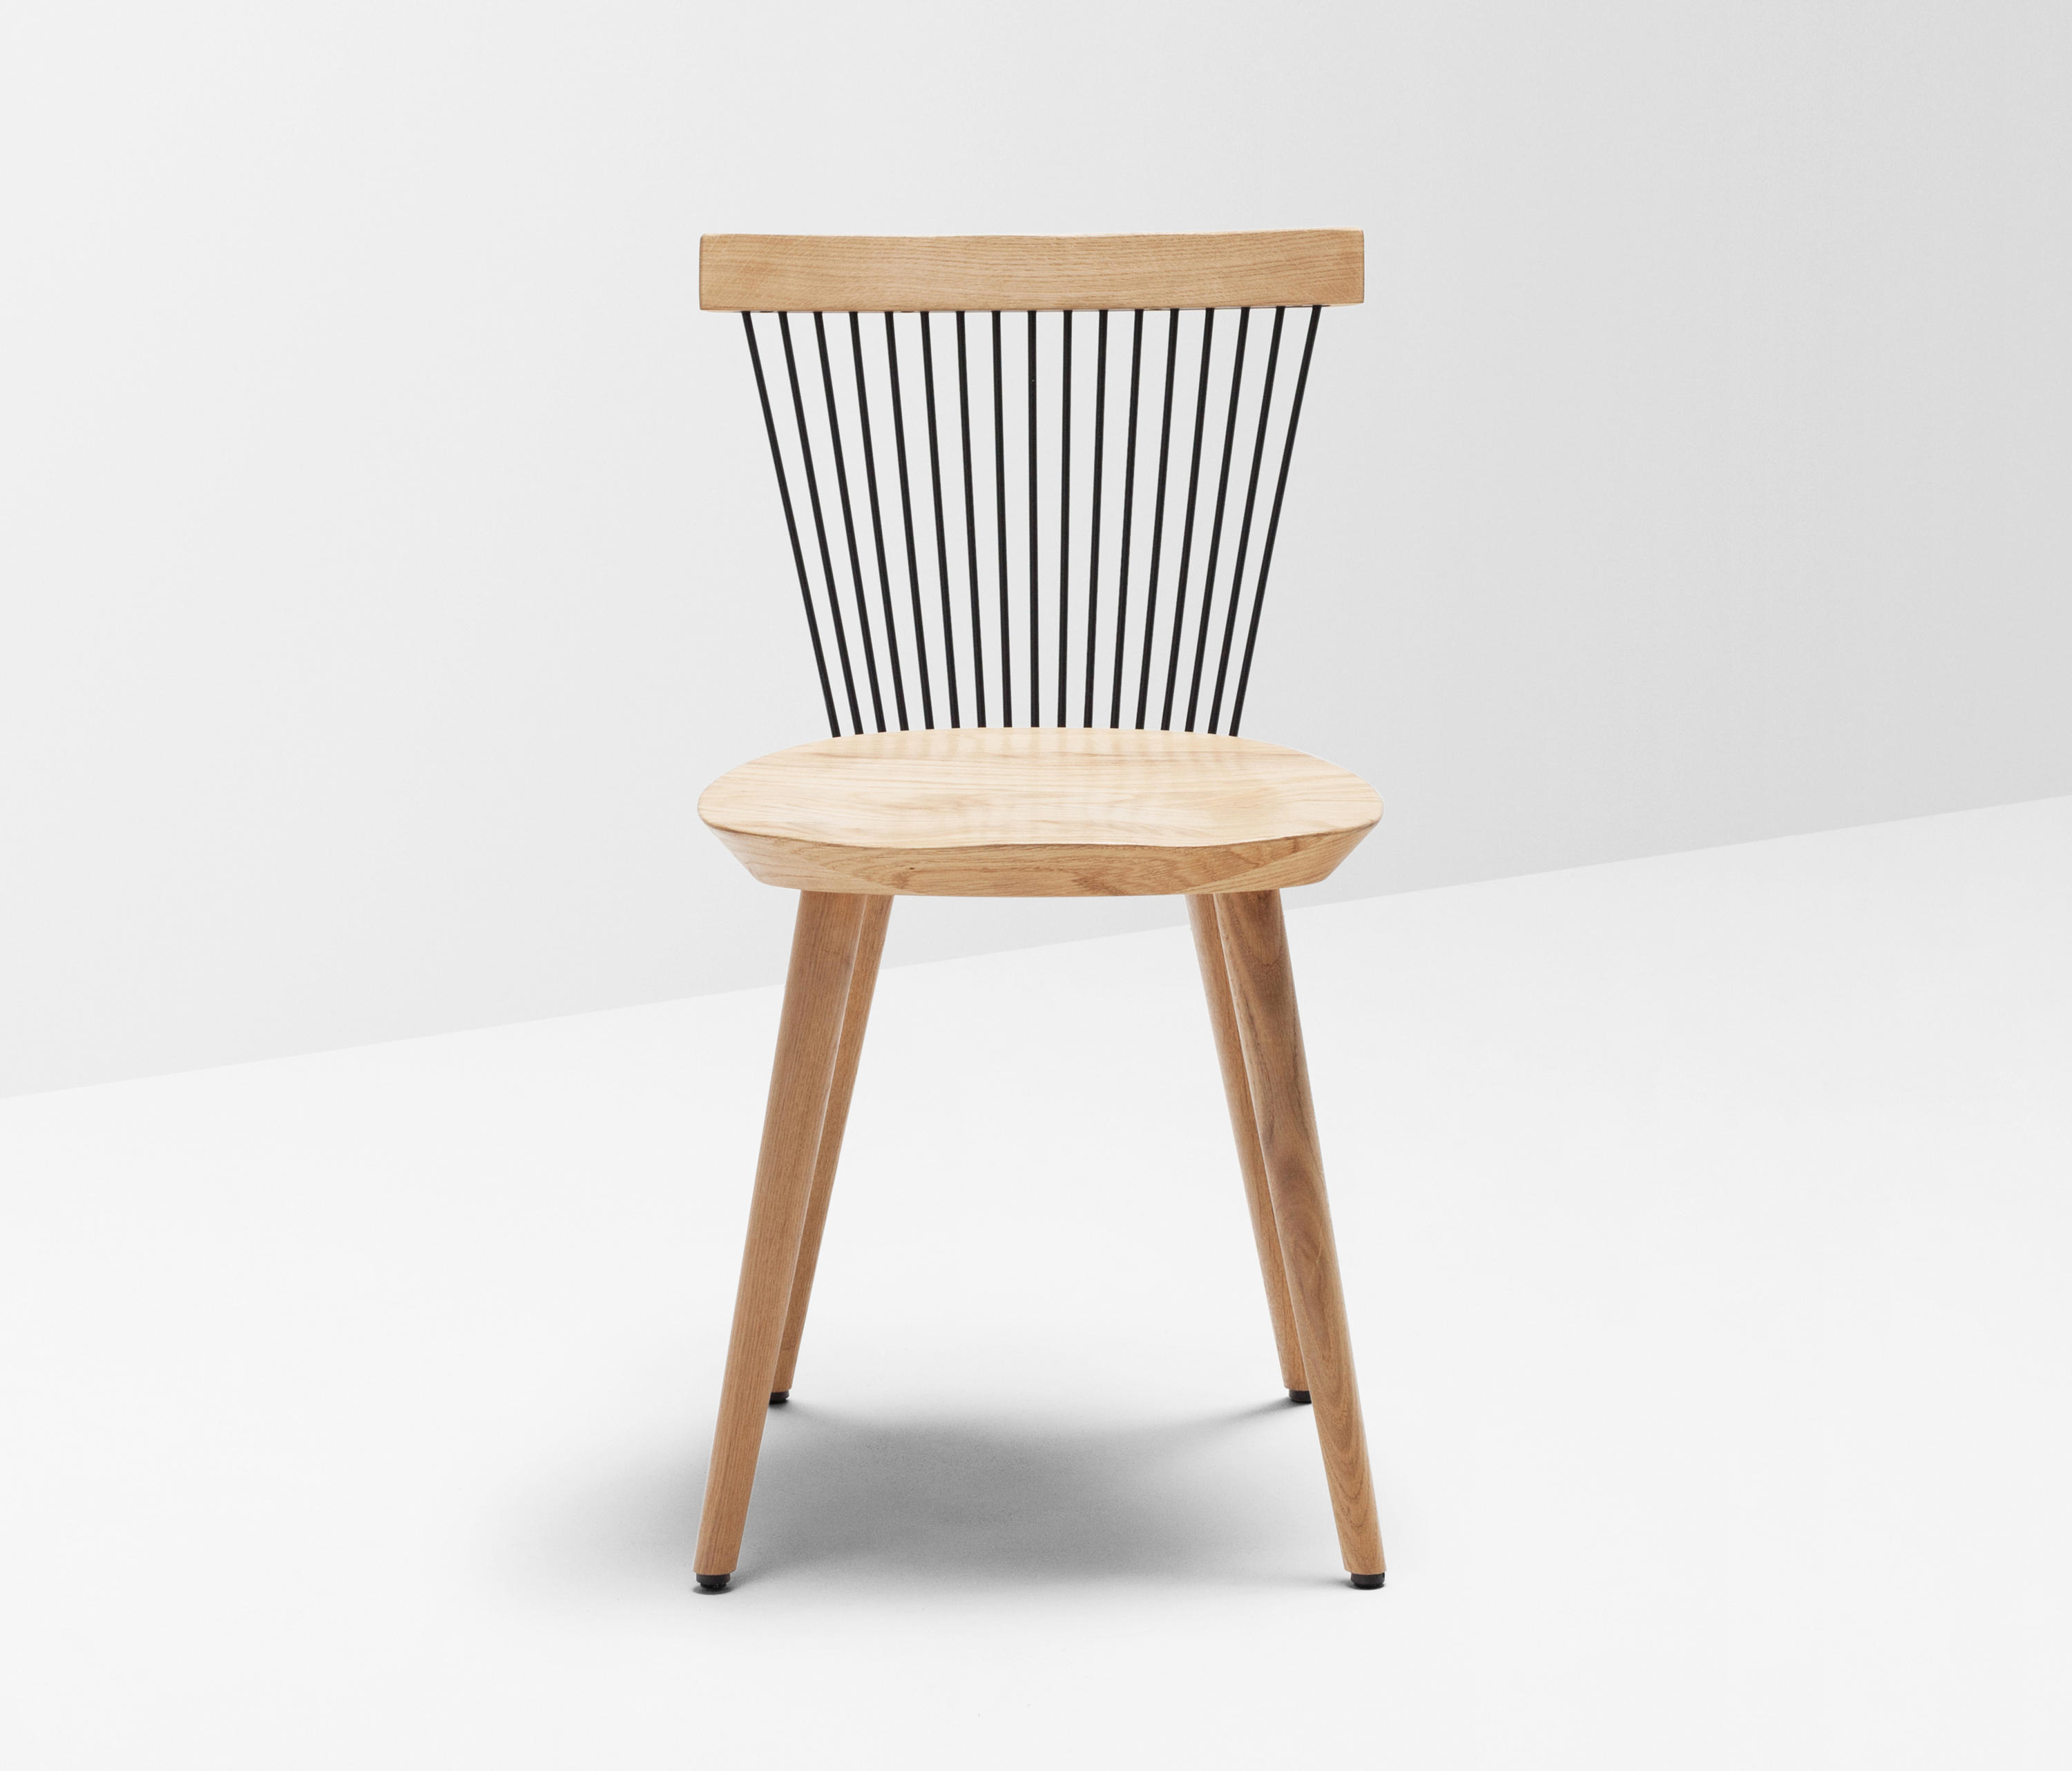 ww chair restaurant chairs from h furniture architonic